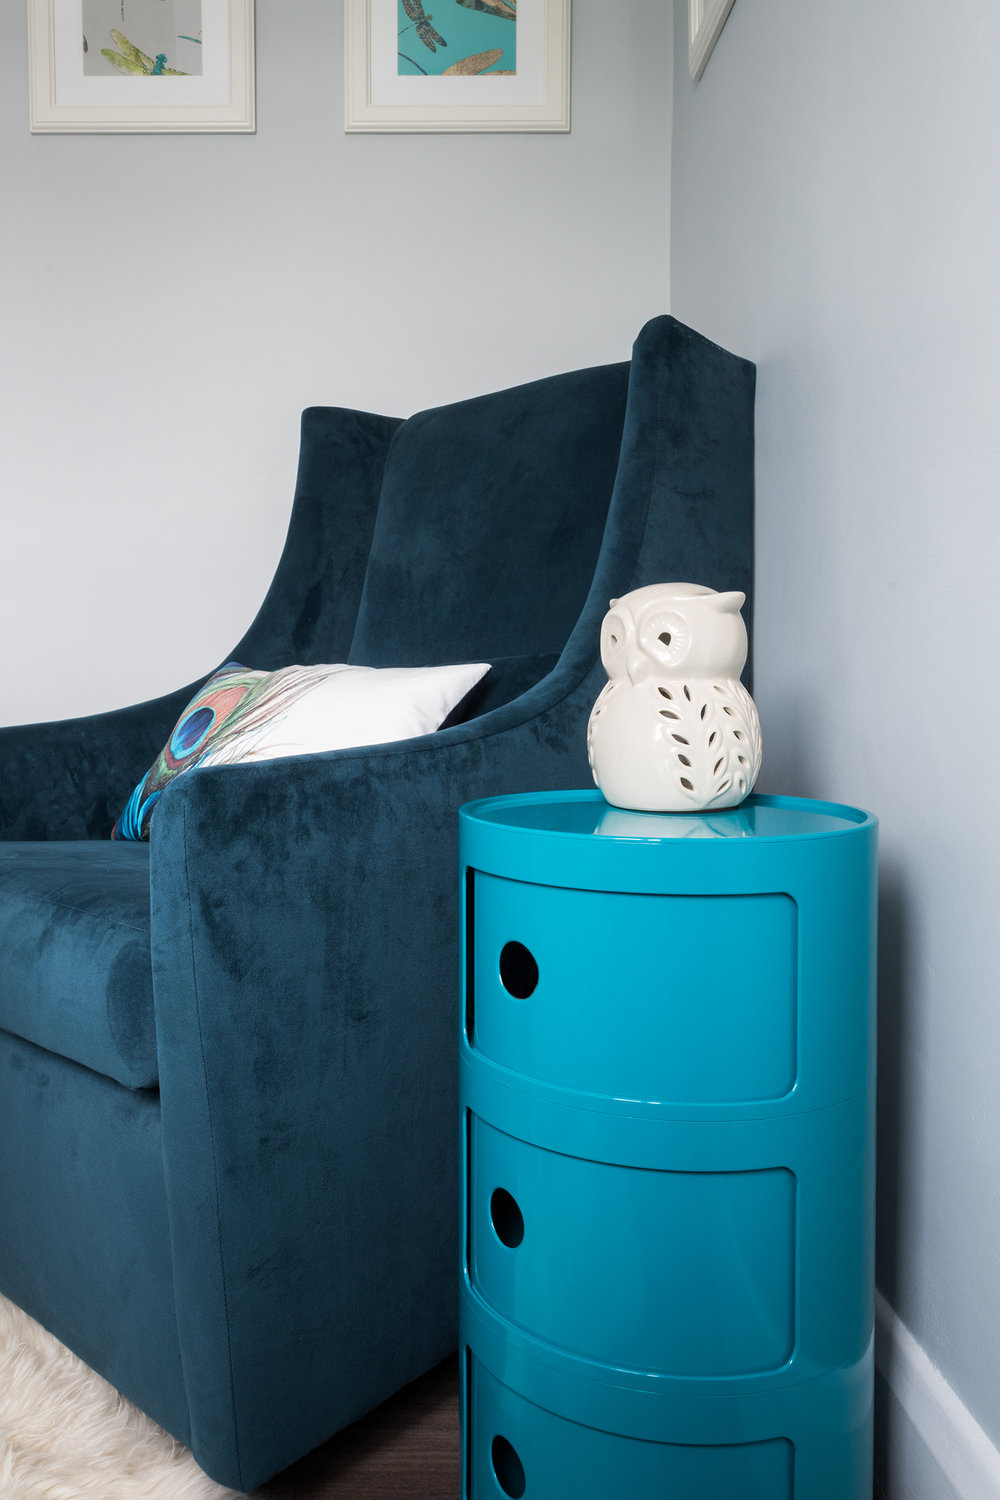 View of rocking chair and sidetable in peacock coloured unisex nursery